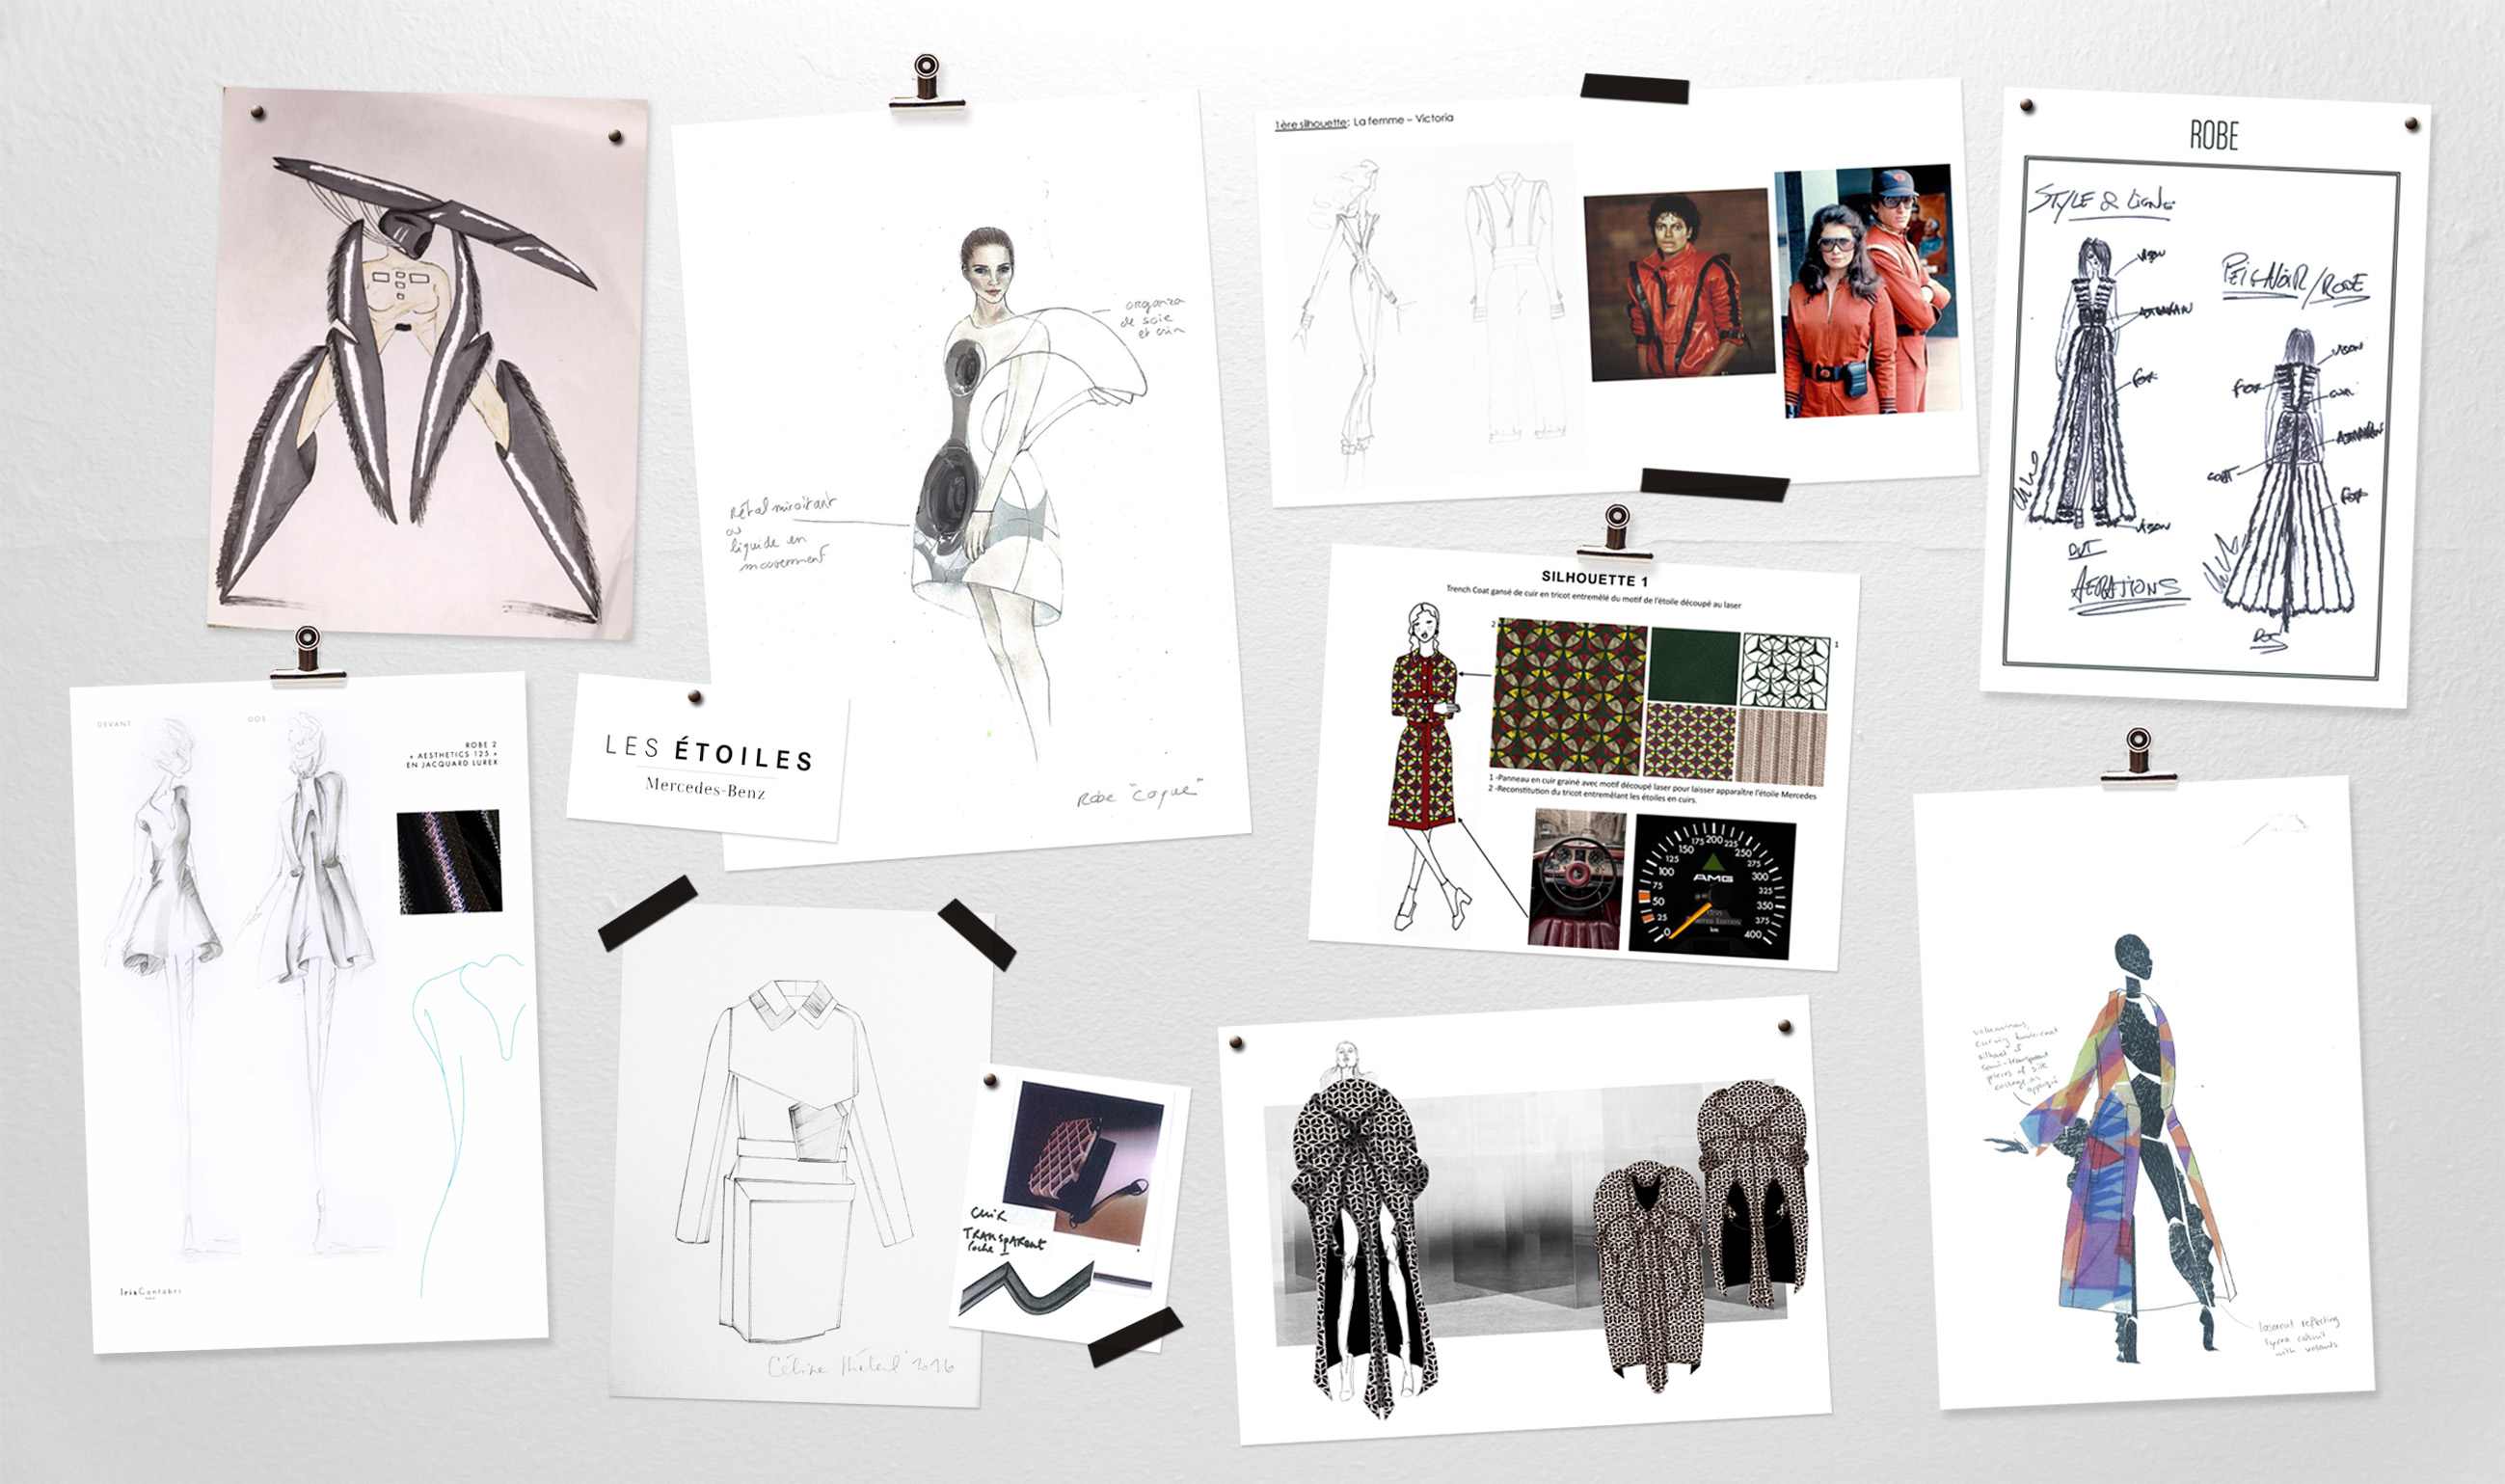 The Mercedes-Benz prize candidates' sketches